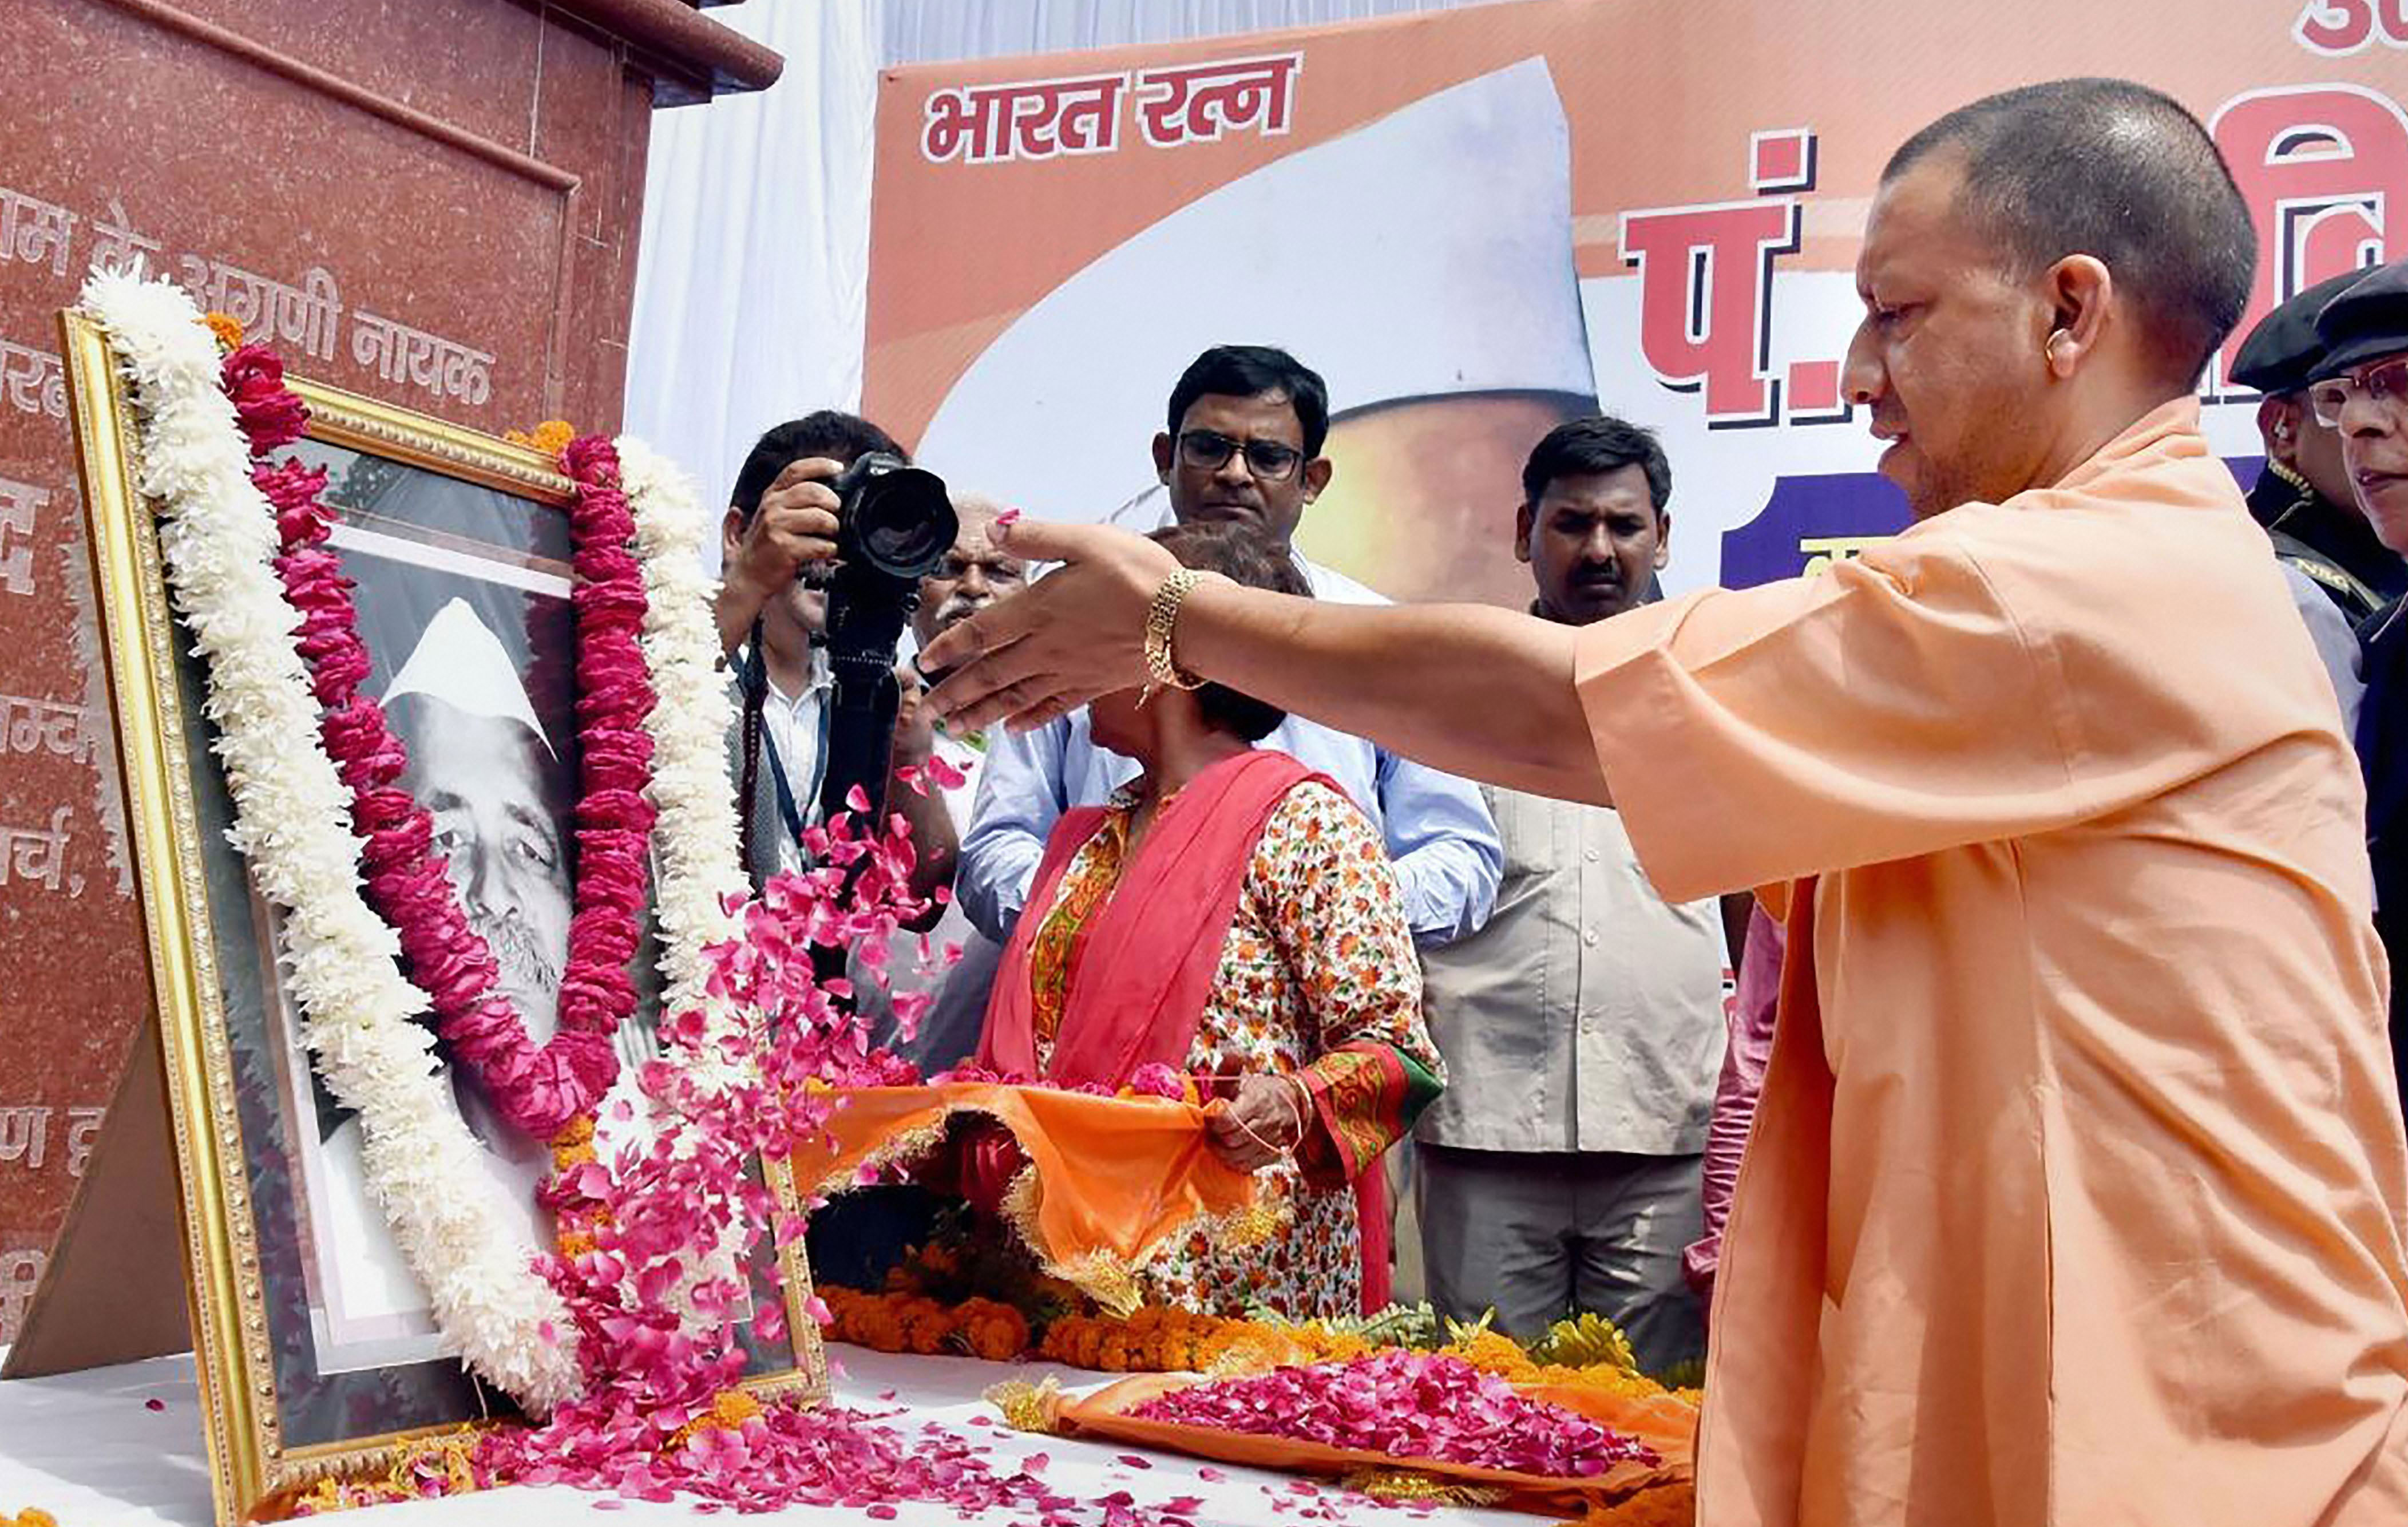 Yogi Adityanath pays tribute to Pt. Govind Ballabh Pant on his birth anniversary in Lucknow on September 10, 2019.